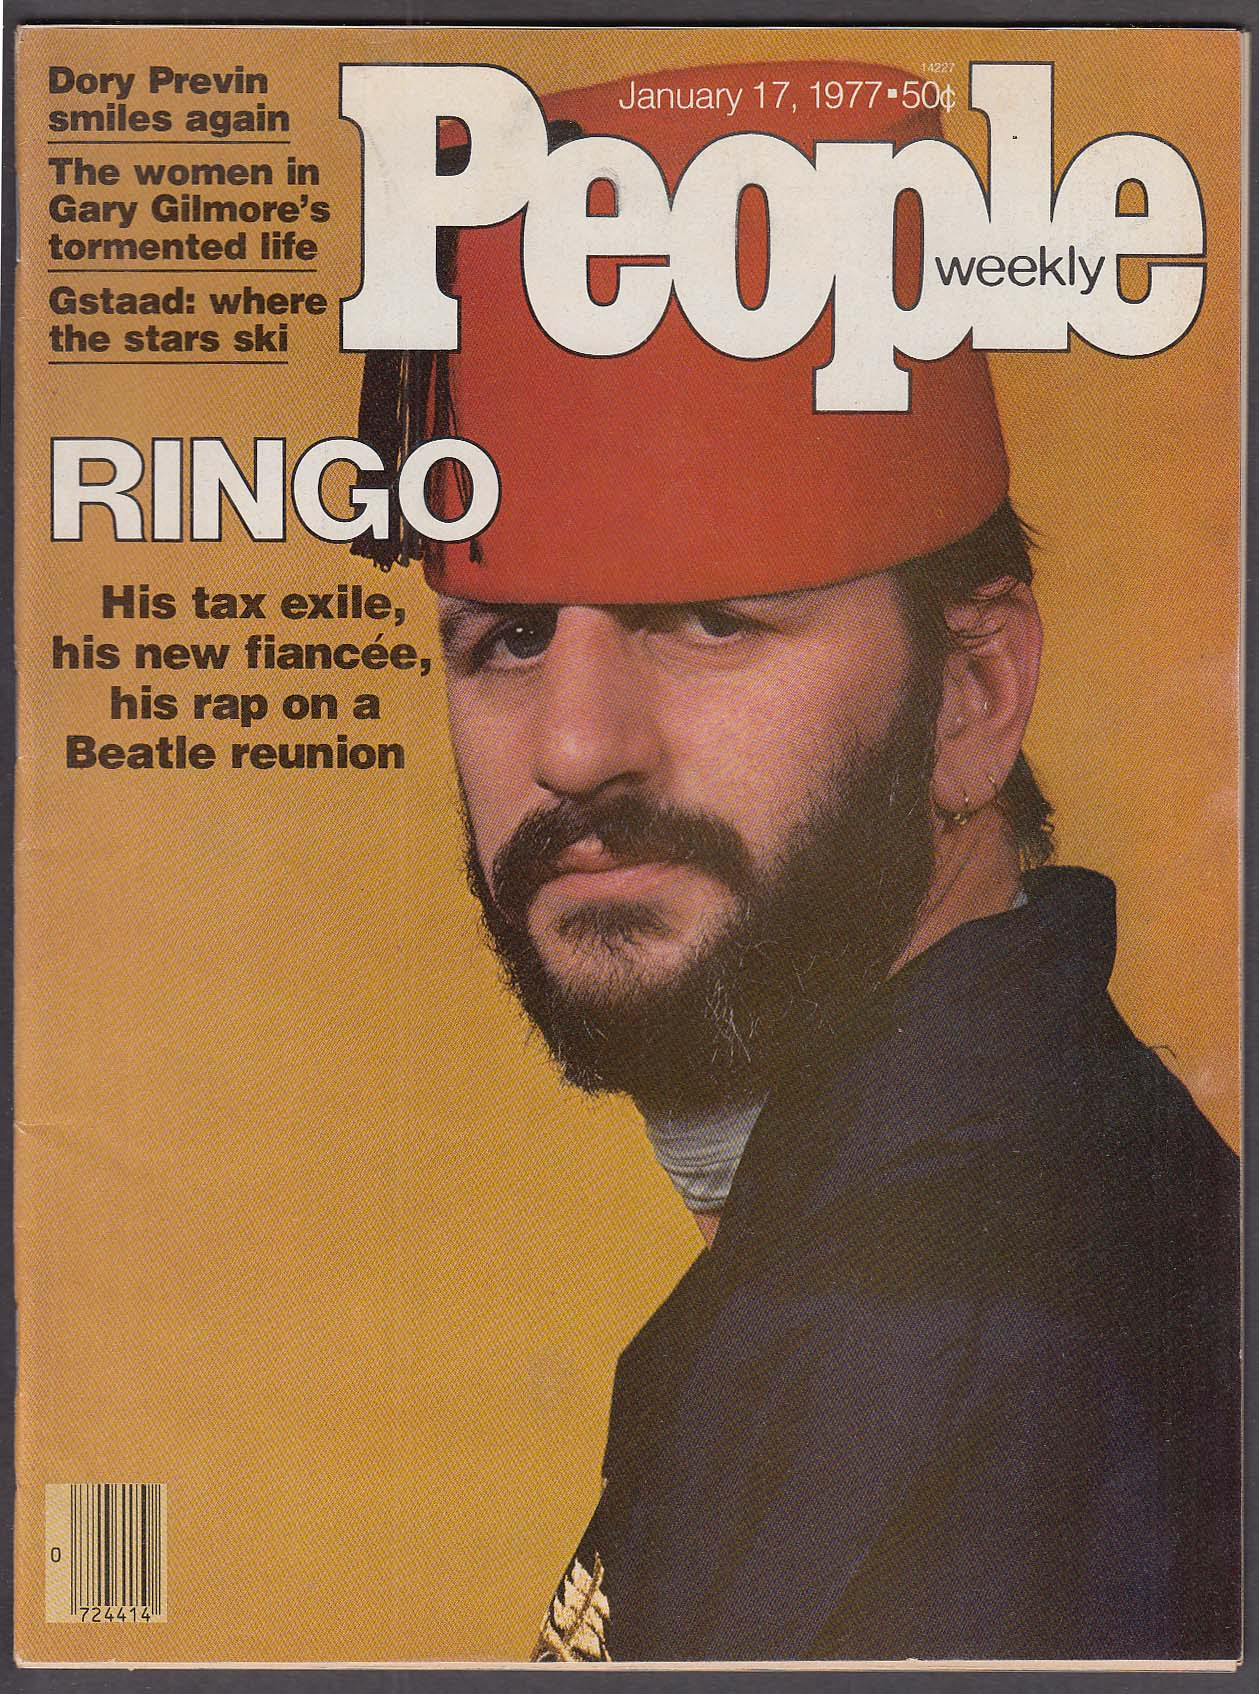 Image for PEOPLE Ringo Starr Gary Gilmore Dory Previn Gstaad ski resorts 1/17 1977